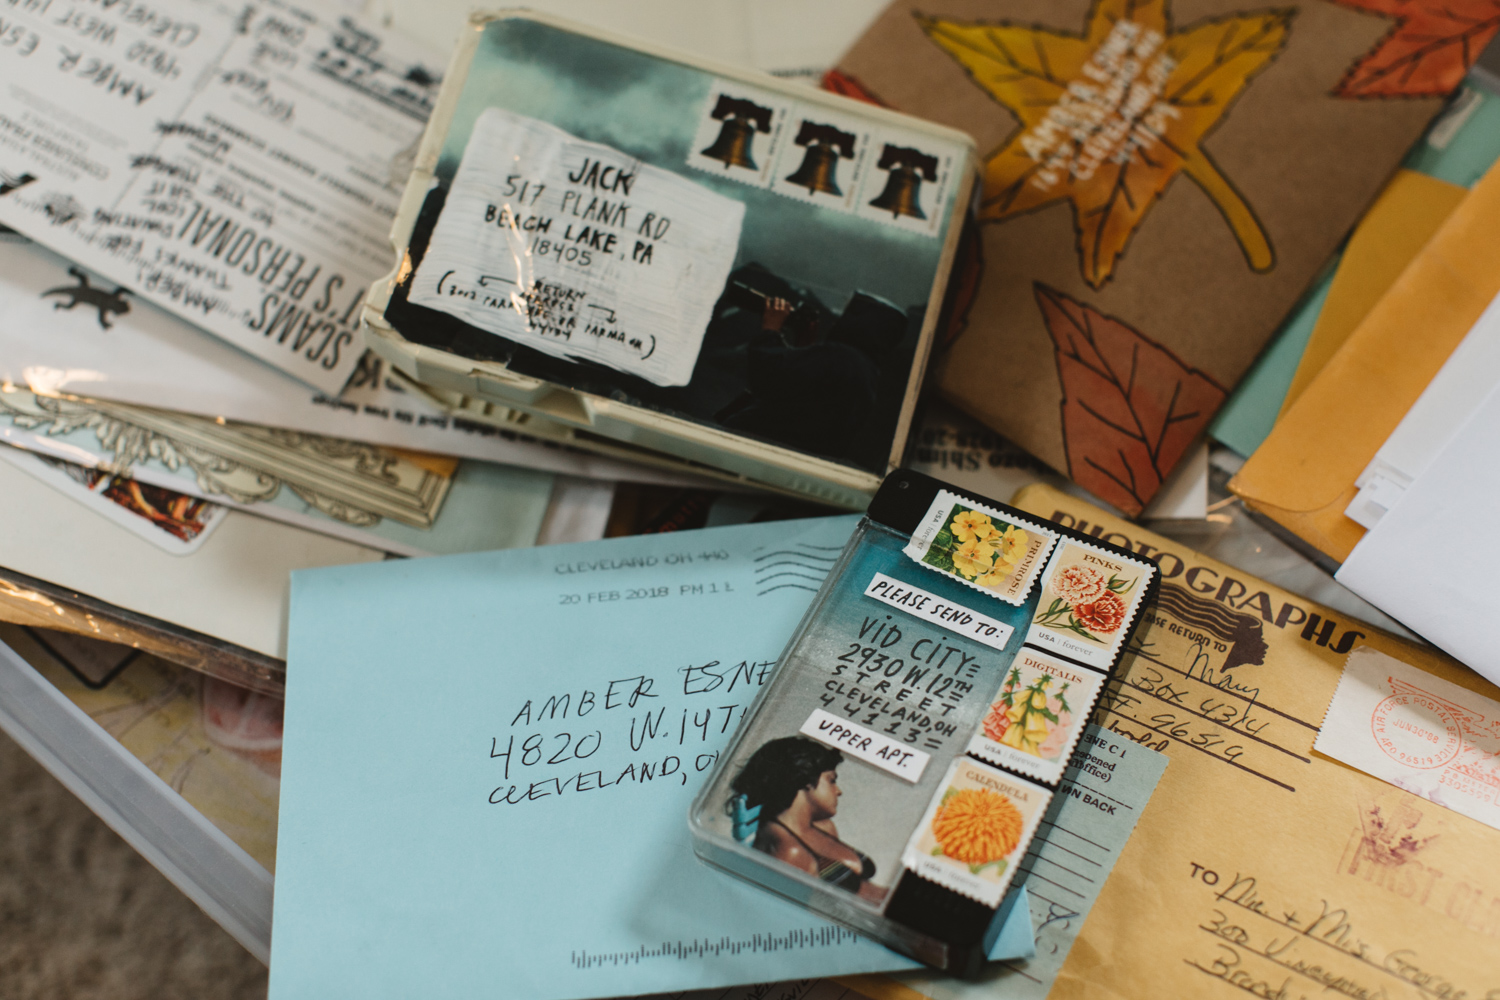 A pile of snail mail with creative drawings and collages